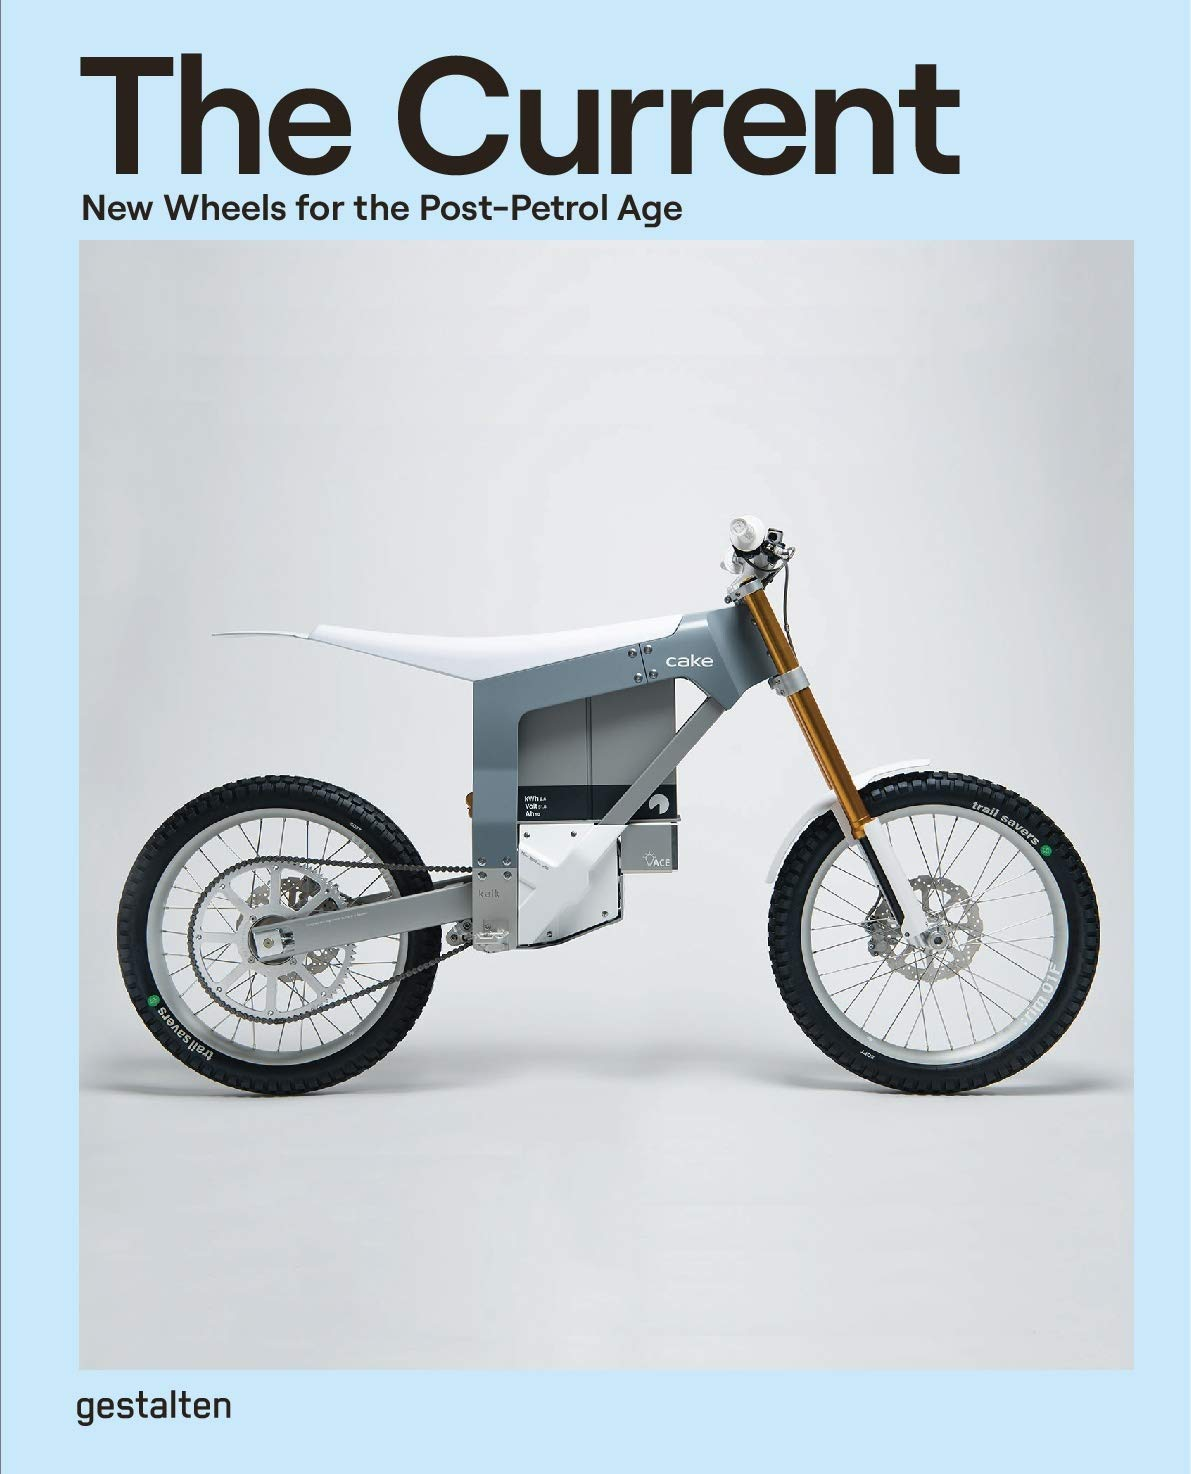 The Current: New Wheels for the Post-Petrol Age book, best gifts for boyfriends